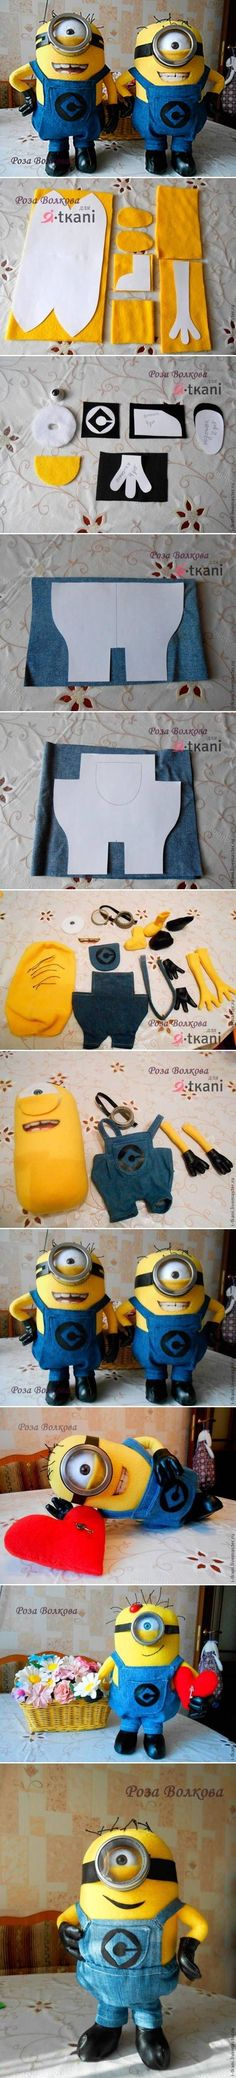 DIY Minion Dolls diy craft crafts craft ideas easy crafts diy ideas diy crafts sewing easy diy kids crafts kids diy craft gifts kids craft sewing ideas sewing crafts fun craft